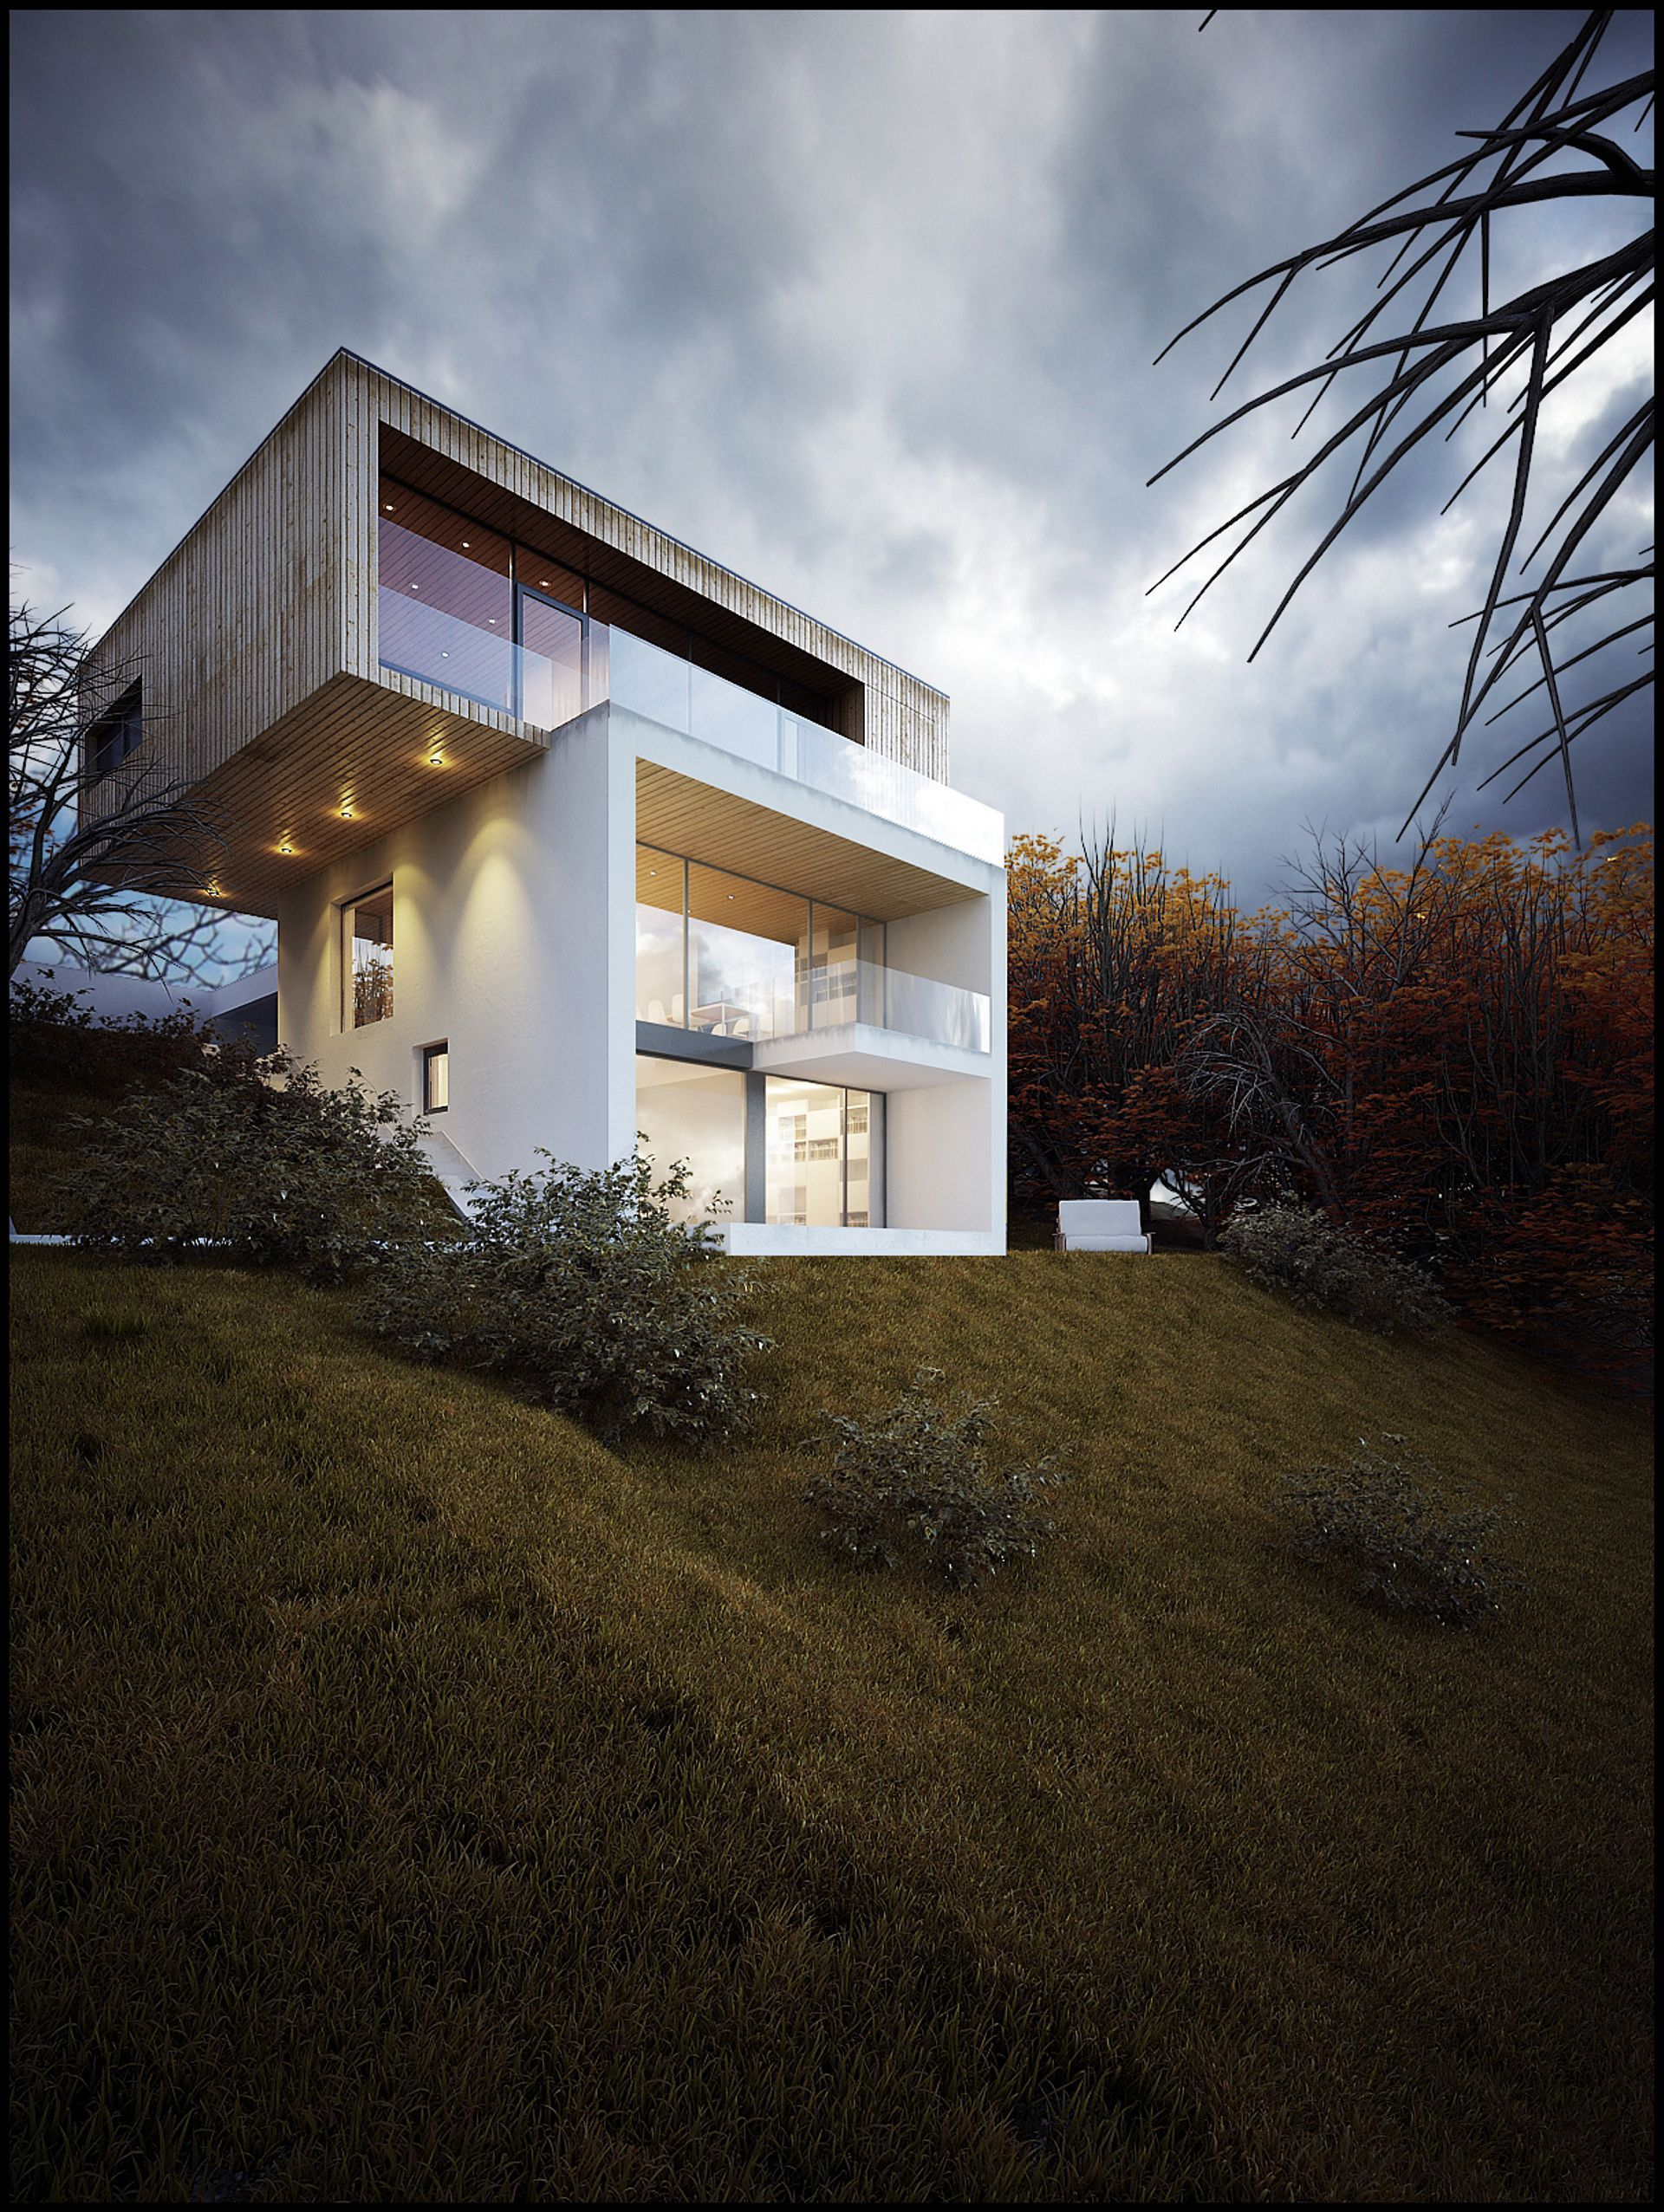 House on the hill by Vlad Sebastian Rusu Architecture Office - Cluj-Napoca, Romania